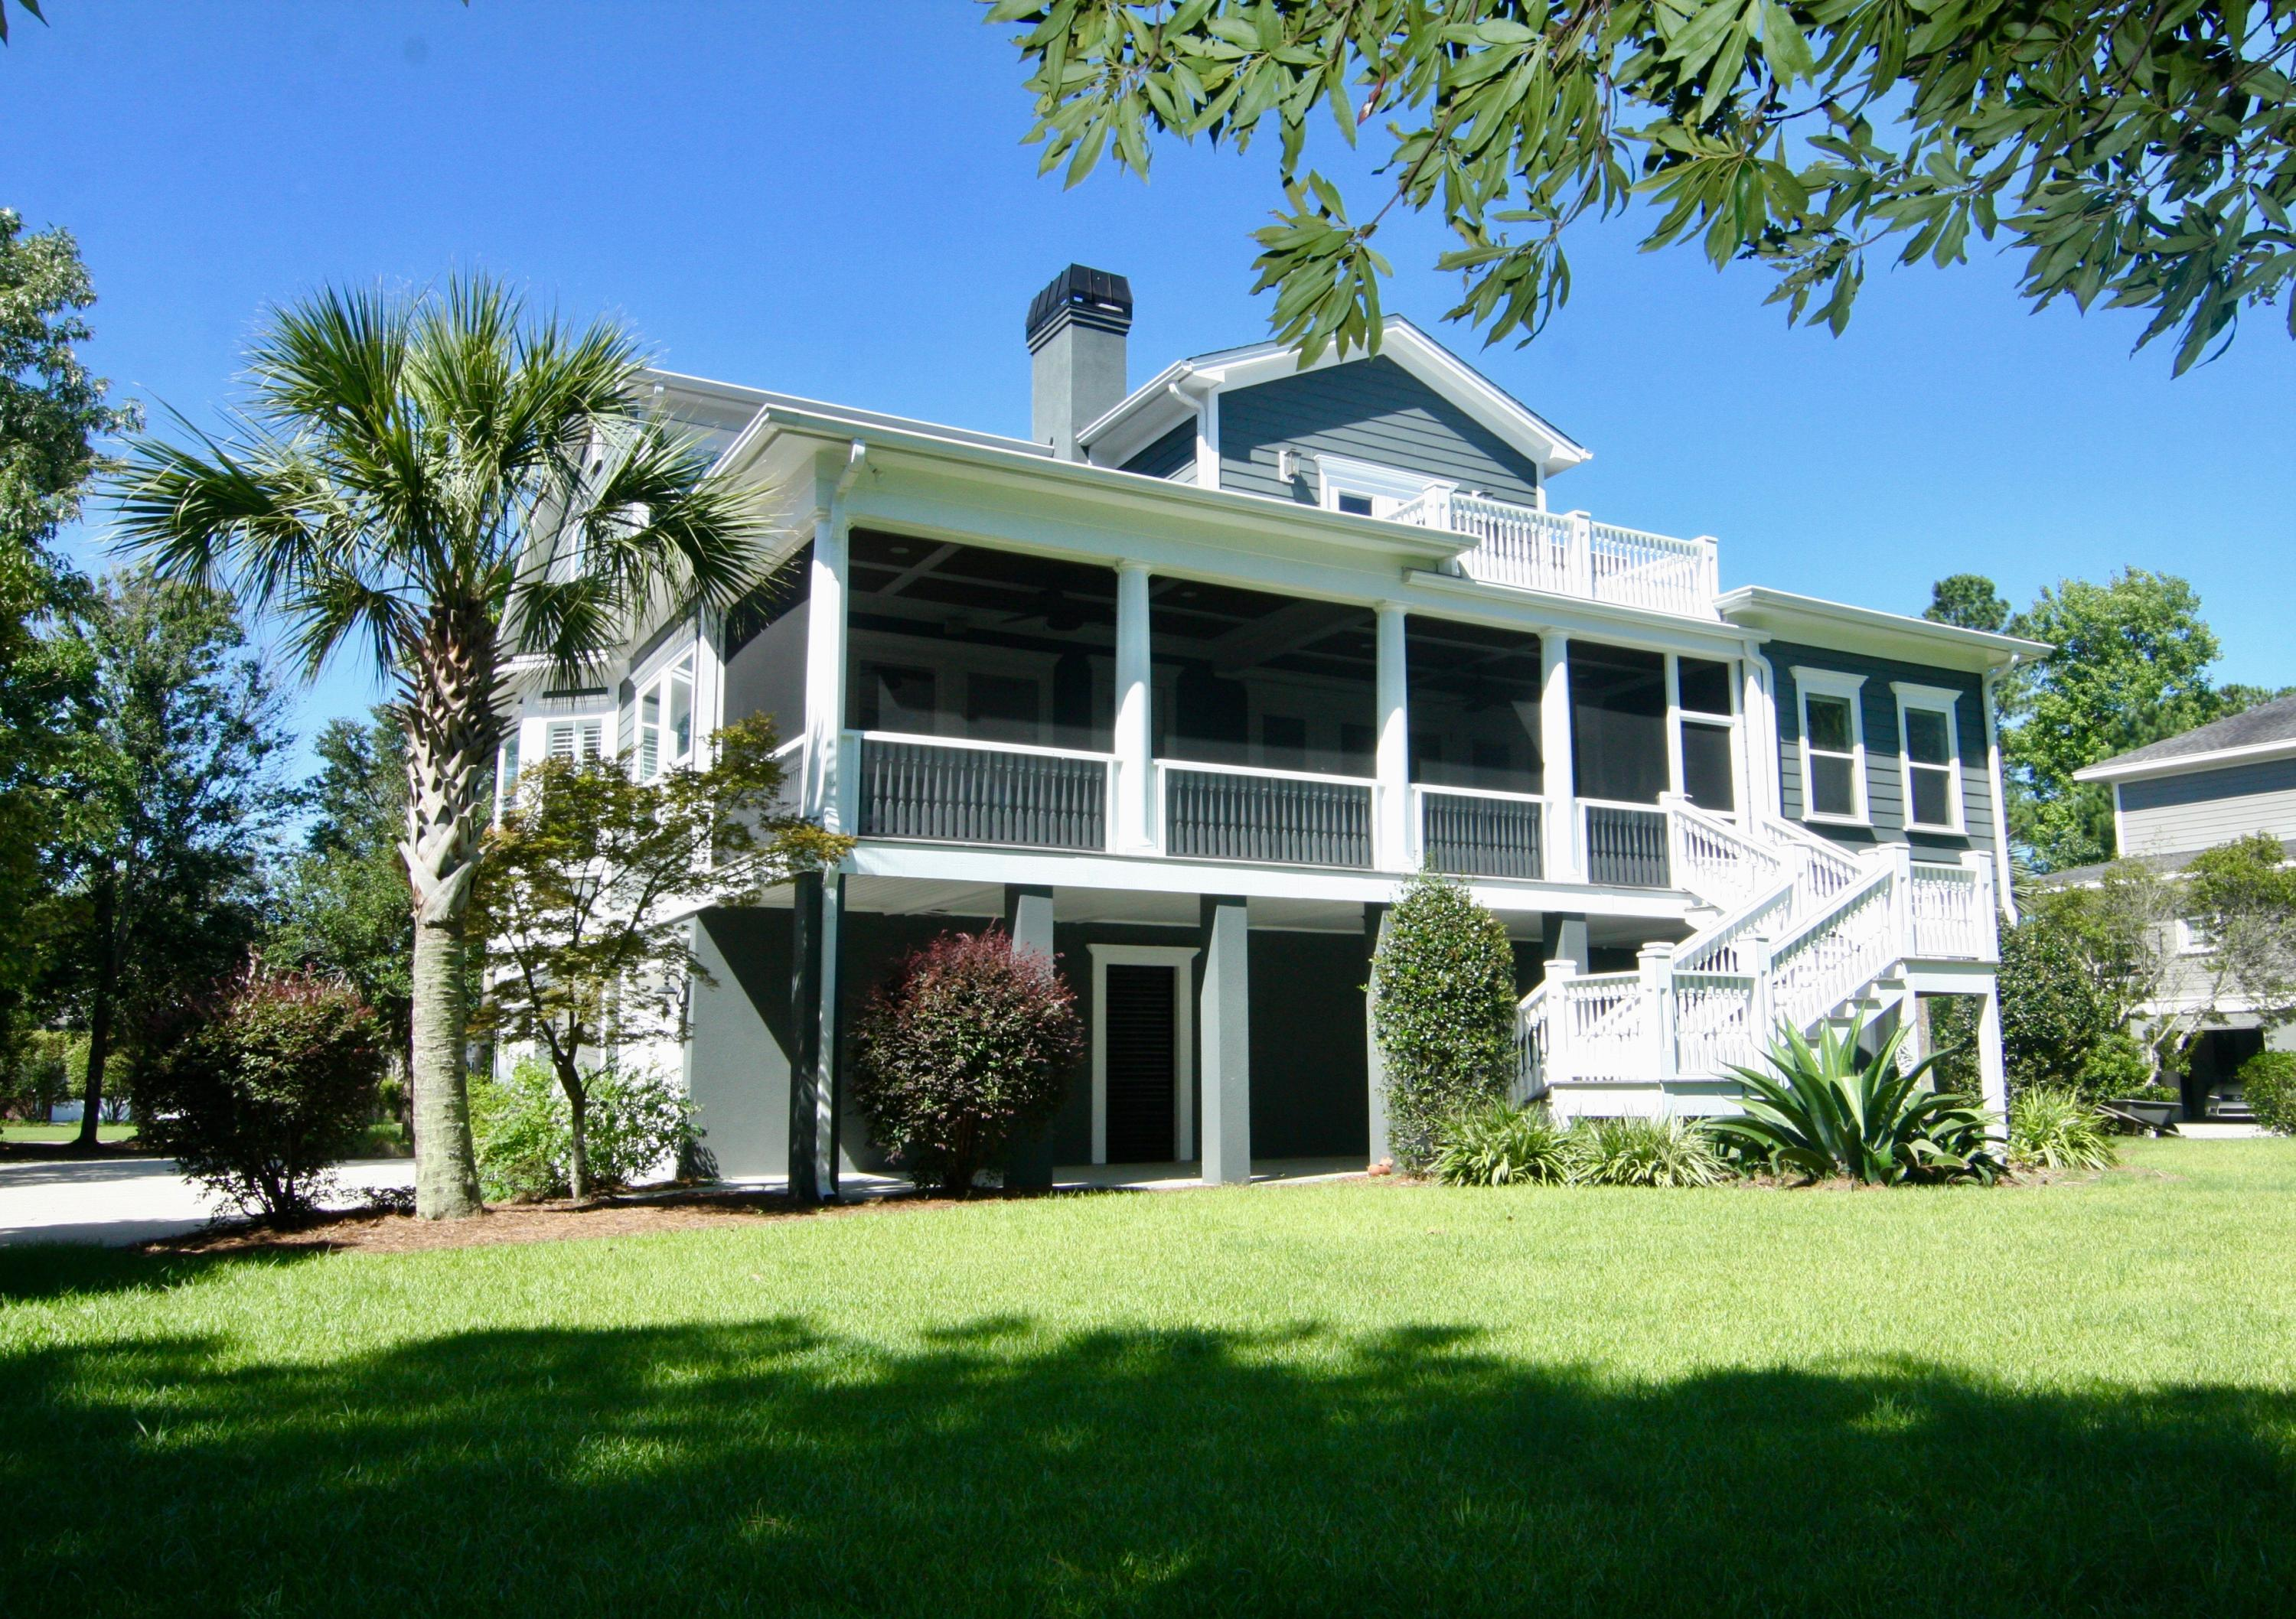 Rivertowne Country Club Homes For Sale - 1529 Rivertowne Country Club, Mount Pleasant, SC - 46